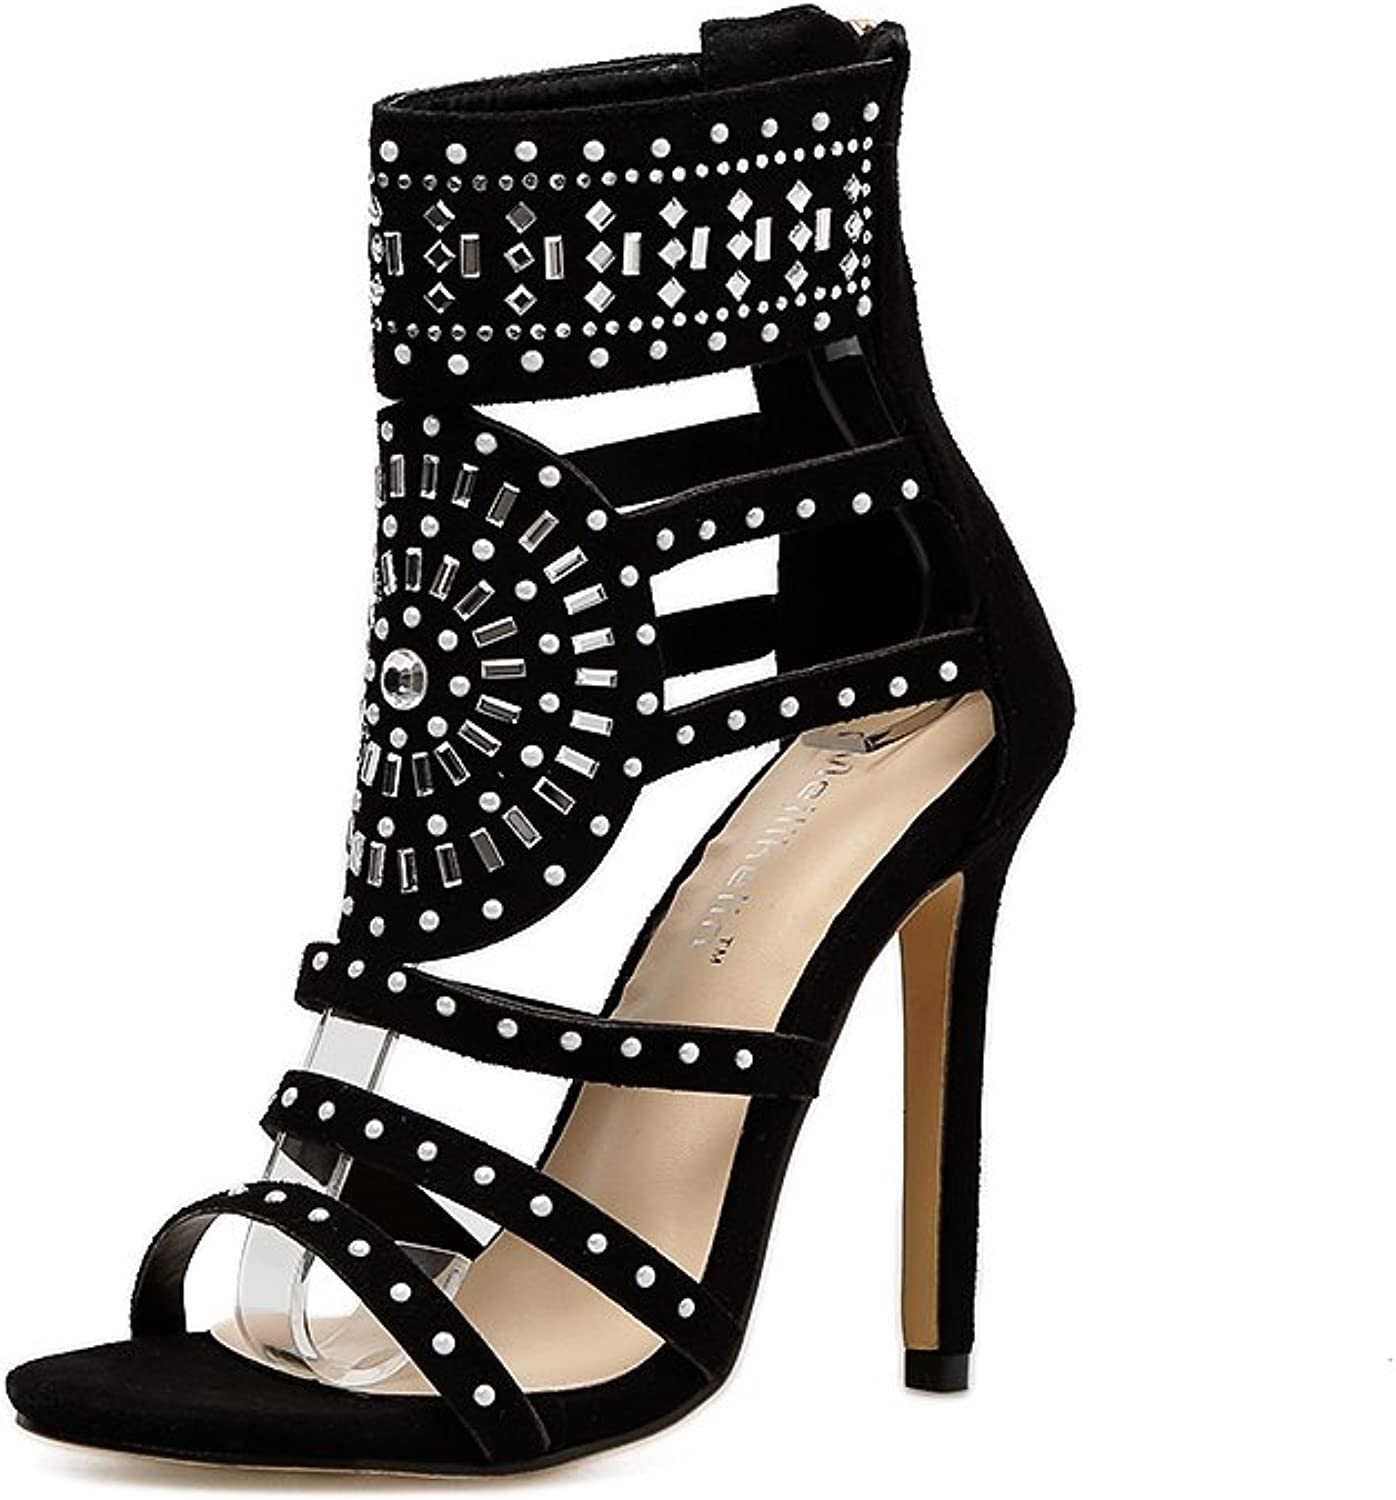 Soulength Women Fashion Open Toe Rhinestone Design High Heel Sandals Crystal Ankle Wrap Glitter Diamond Gladiator Black Size 35-40